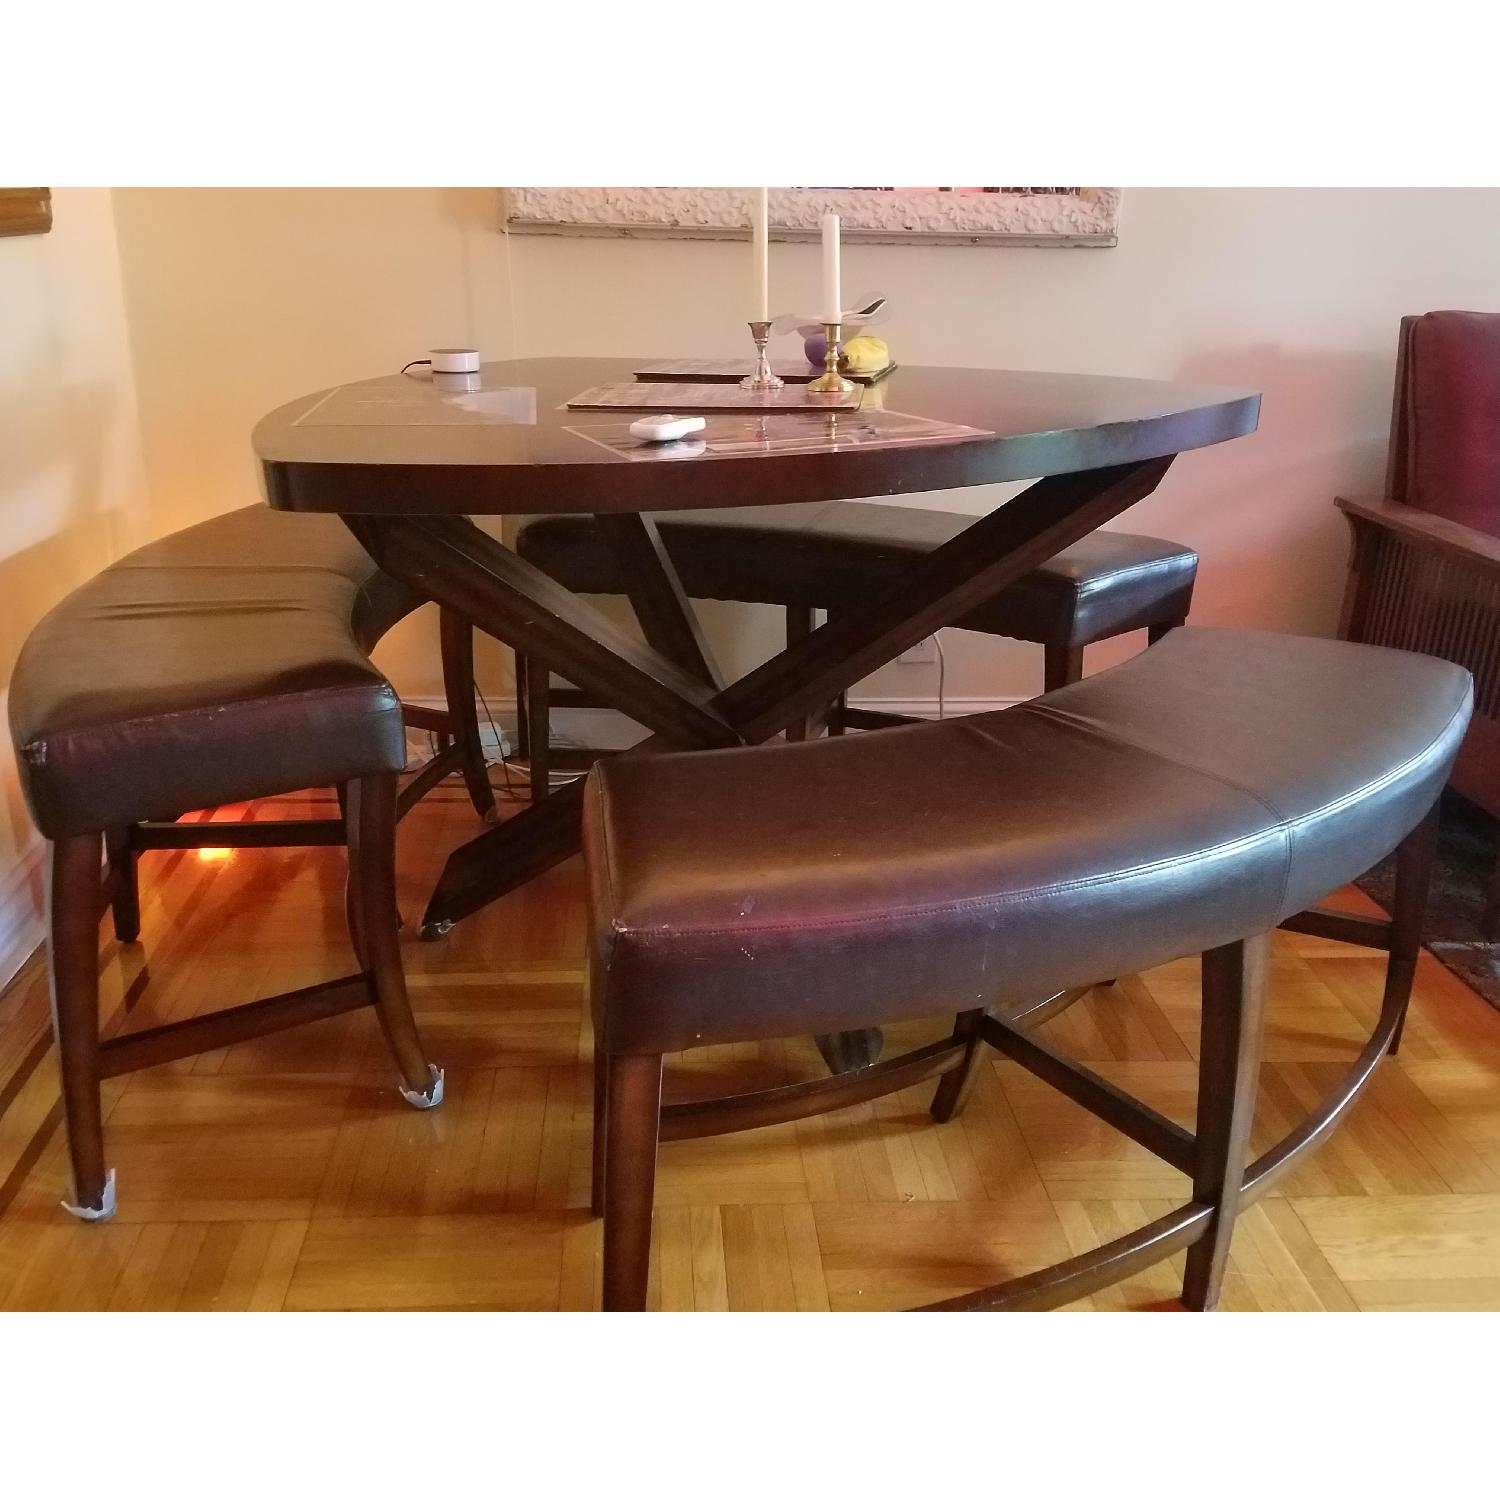 Triangle Dining Table w/ 3 Benches - image-2